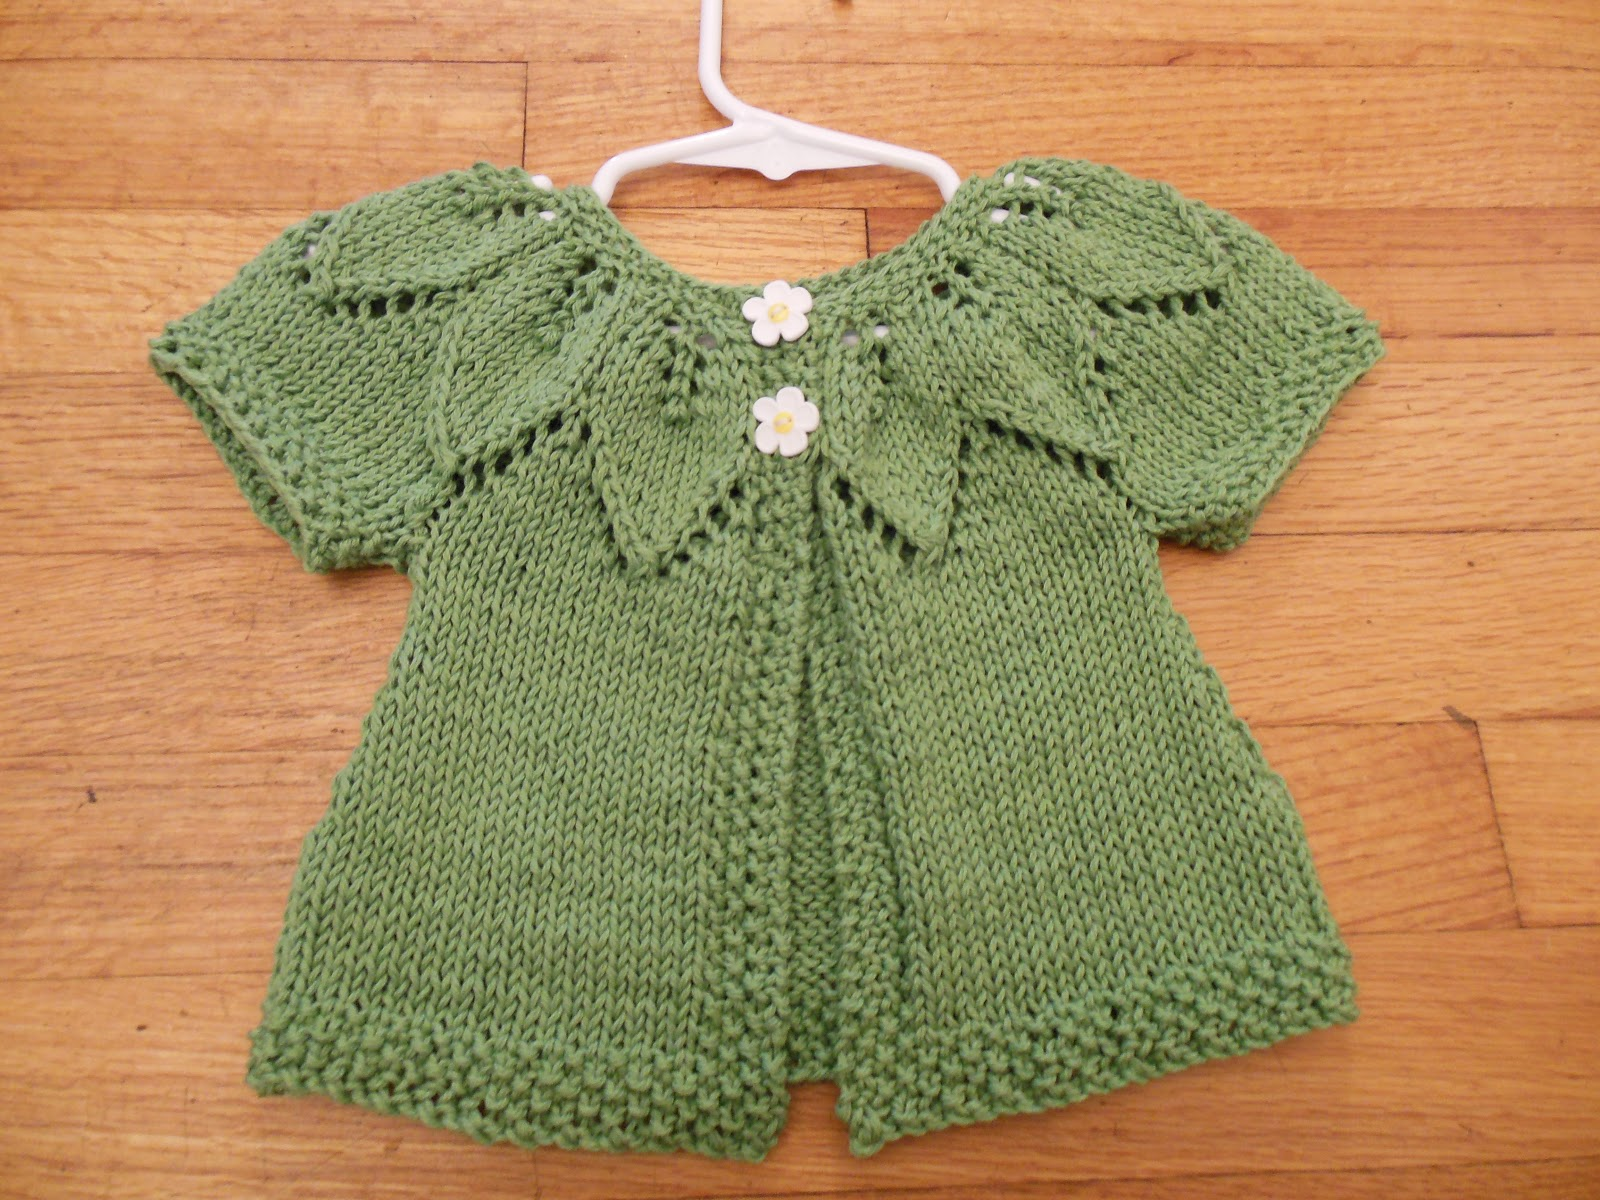 Baby Girl Sweater Patterns Knitting : Natural State Knitting: Baby Leaf Sweater